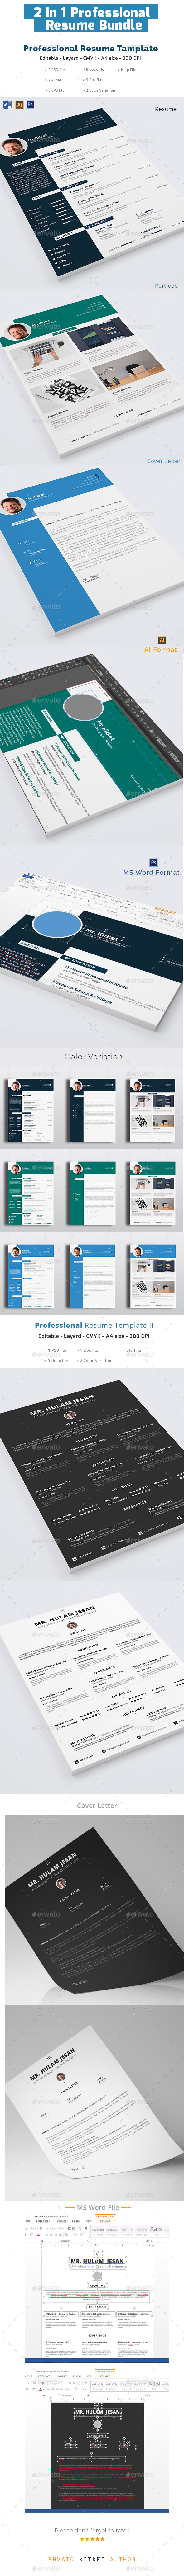 Professional Resume Bundle - Resumes Stationery